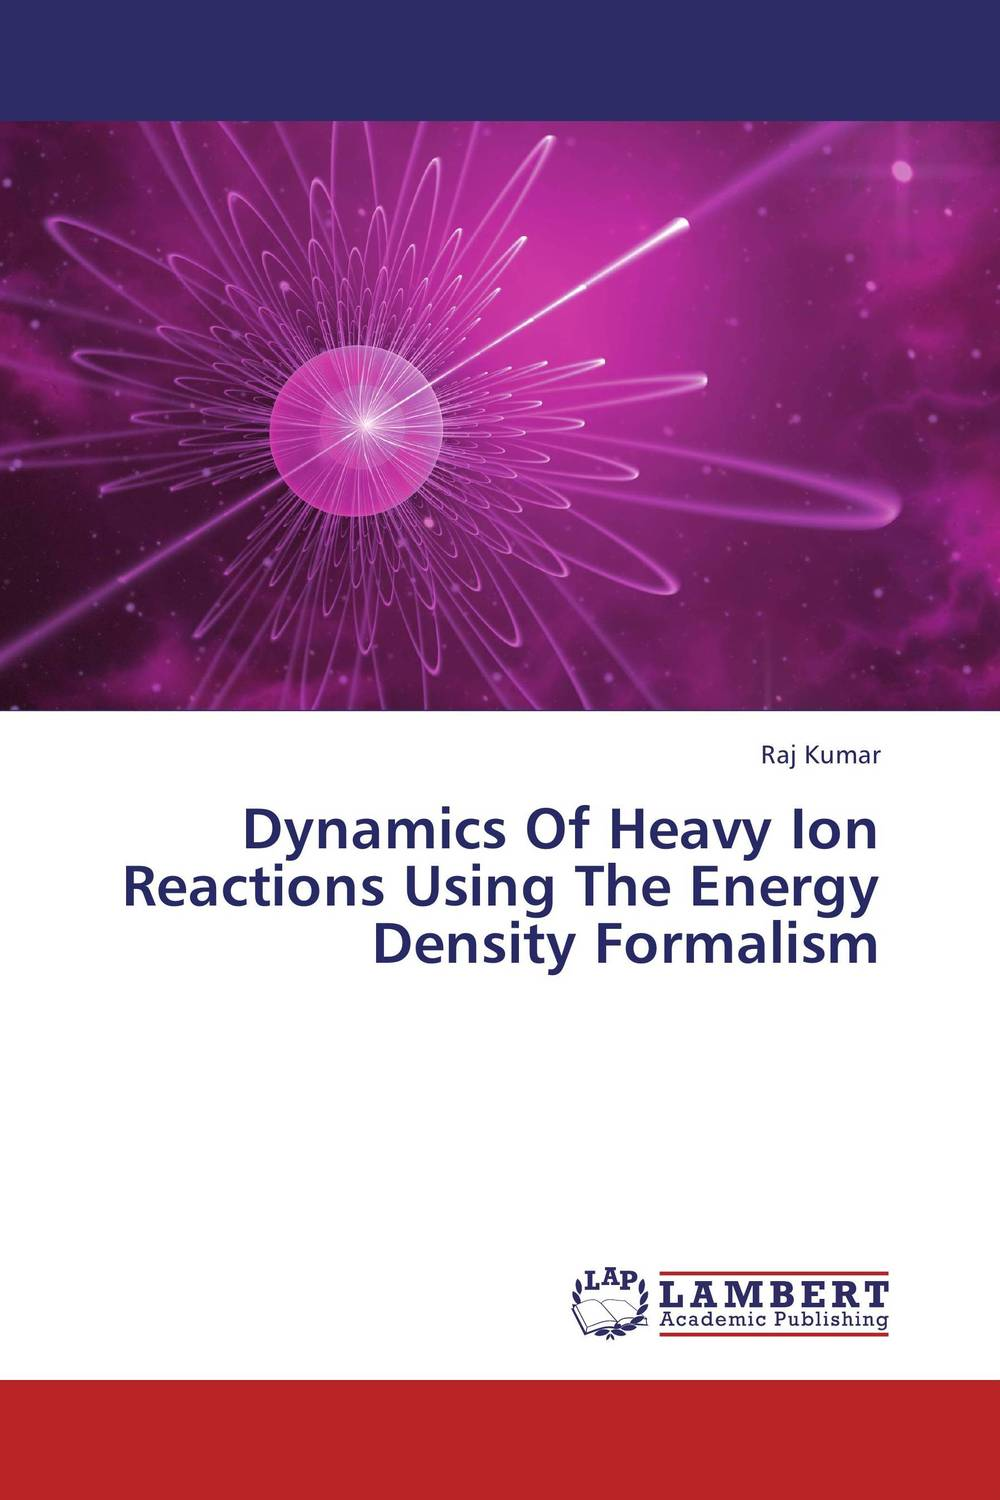 Dynamics Of Heavy Ion Reactions Using The Energy Density Formalism fundamentals of physics extended 9th edition international student version with wileyplus set